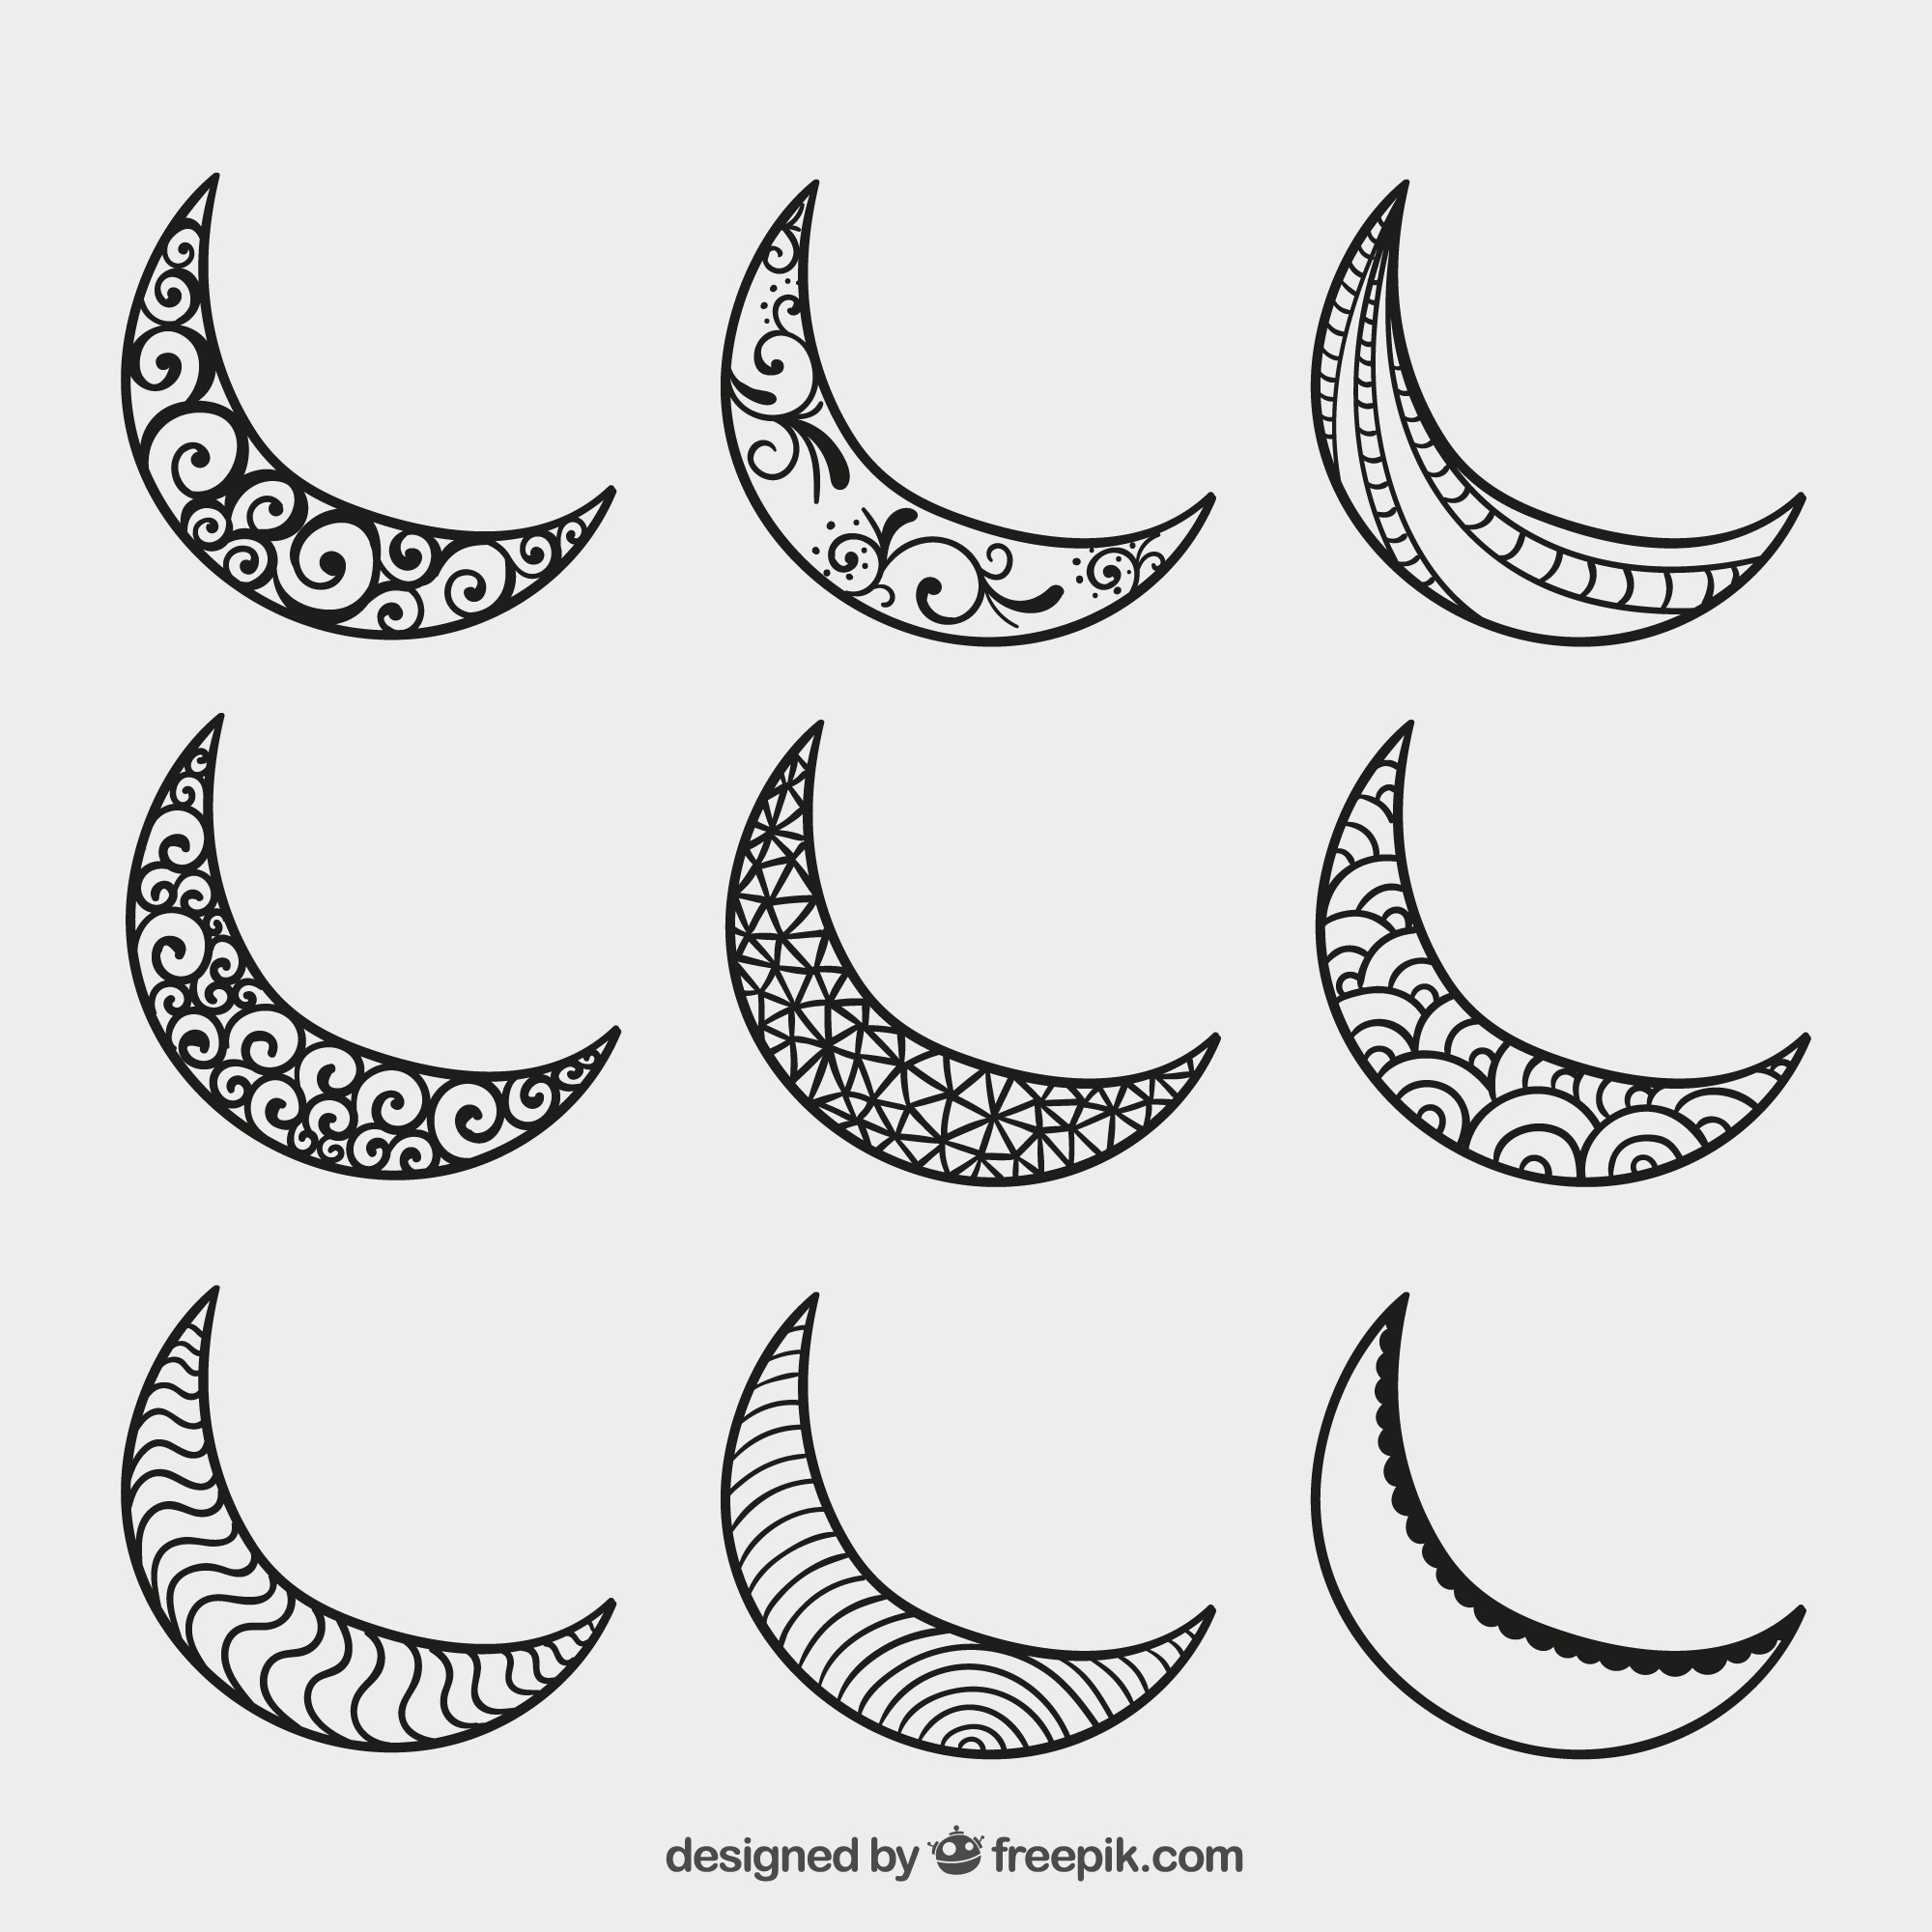 Hand drawn crescent moons